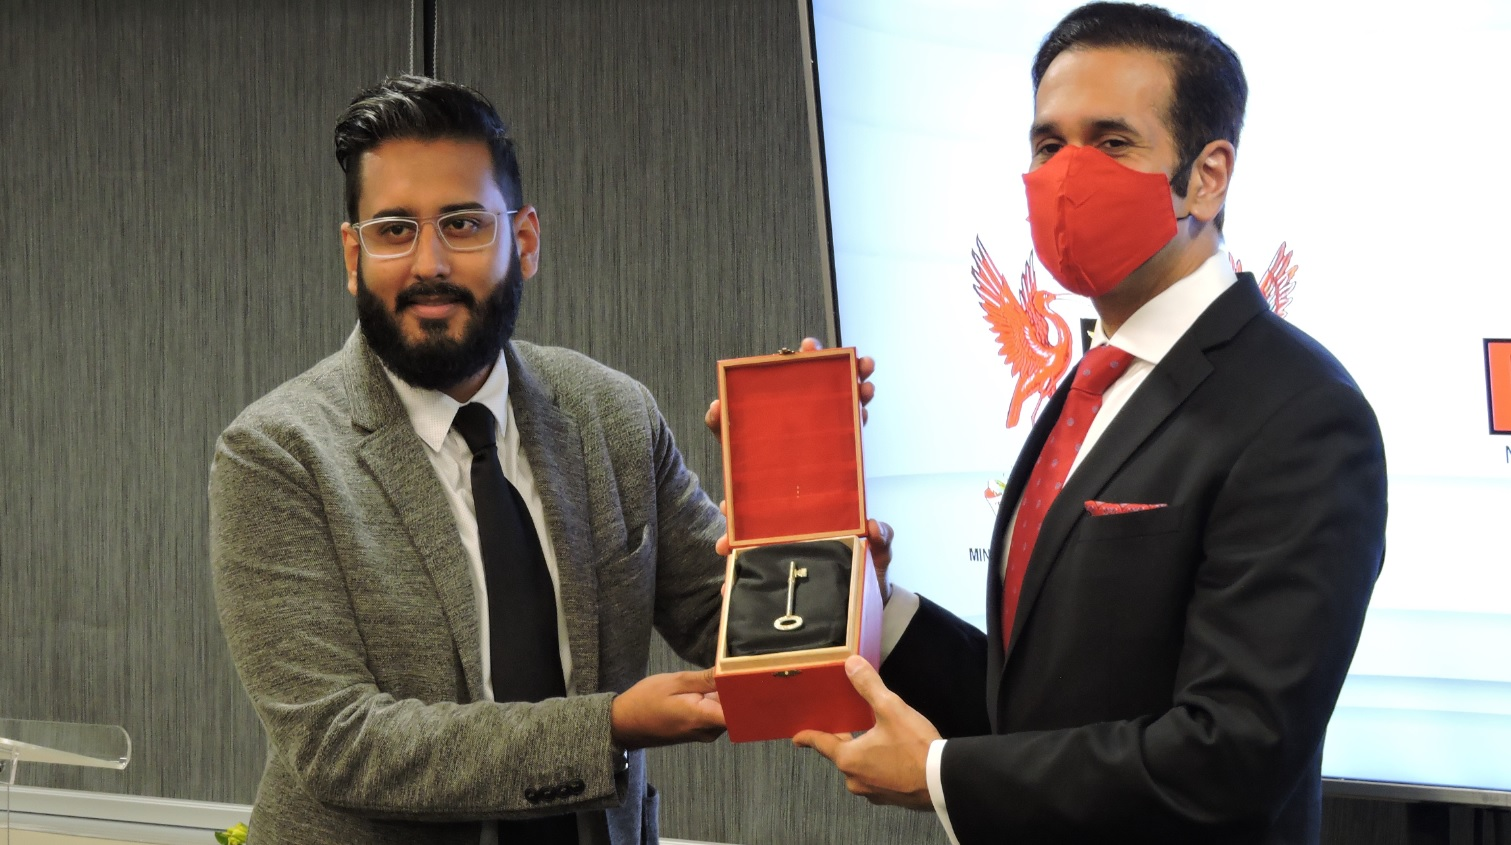 Faris Al-Rawi, Attorney General and Minister of Legal Affairs is presented with the ceremonial key to the Director of Public Prosecution's new office space on Park Street, Port of Spain by Naasir Mohammed, Communications Manager of NIDCO.